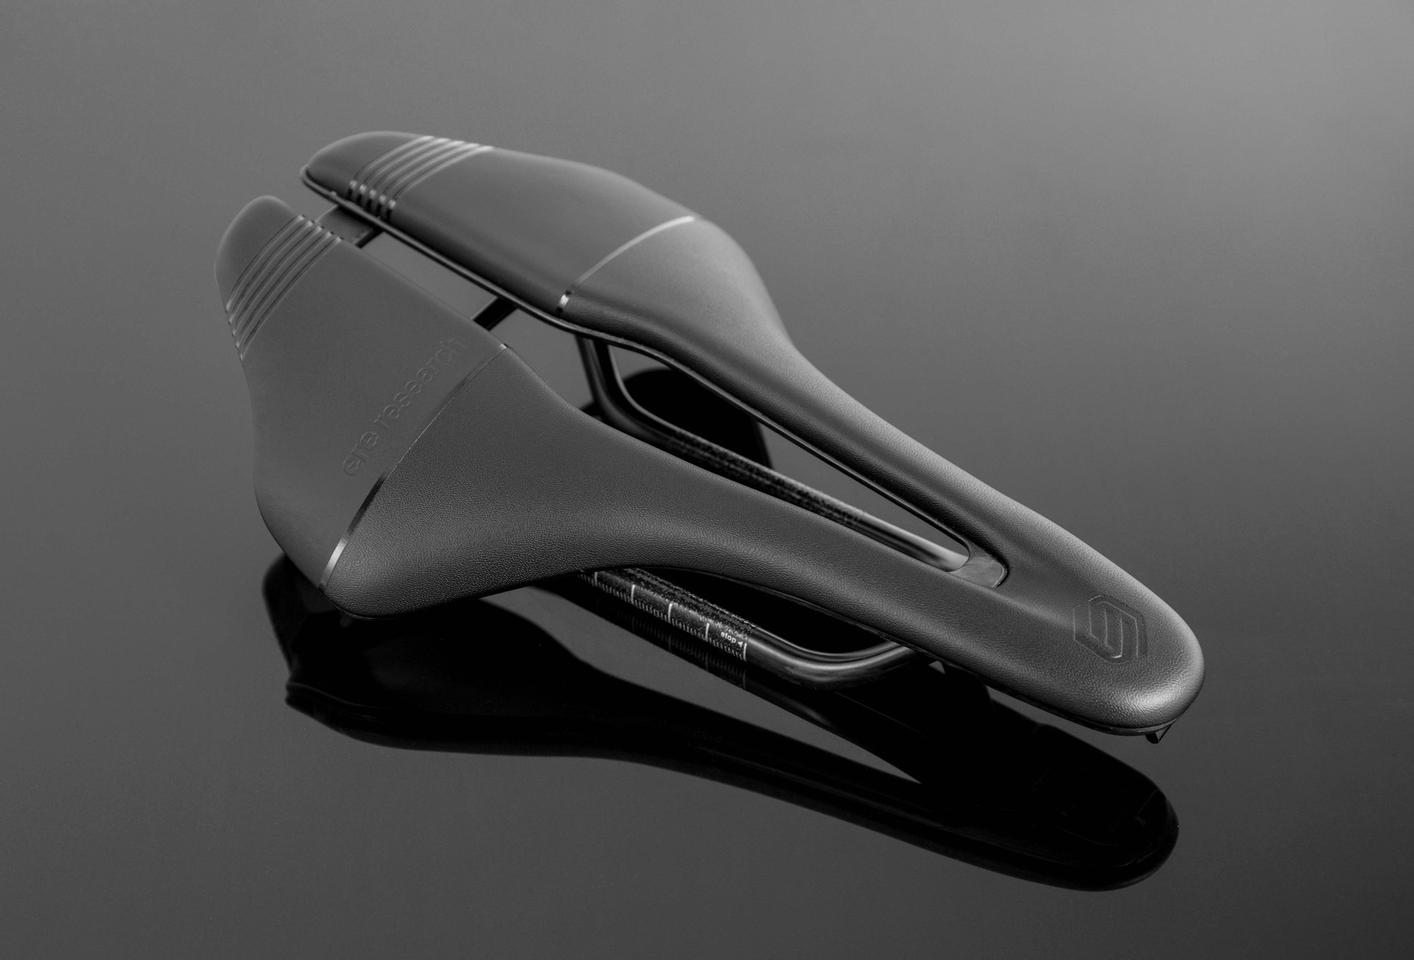 The Genus is flat, designed for riders who want to rotate their hips more easily